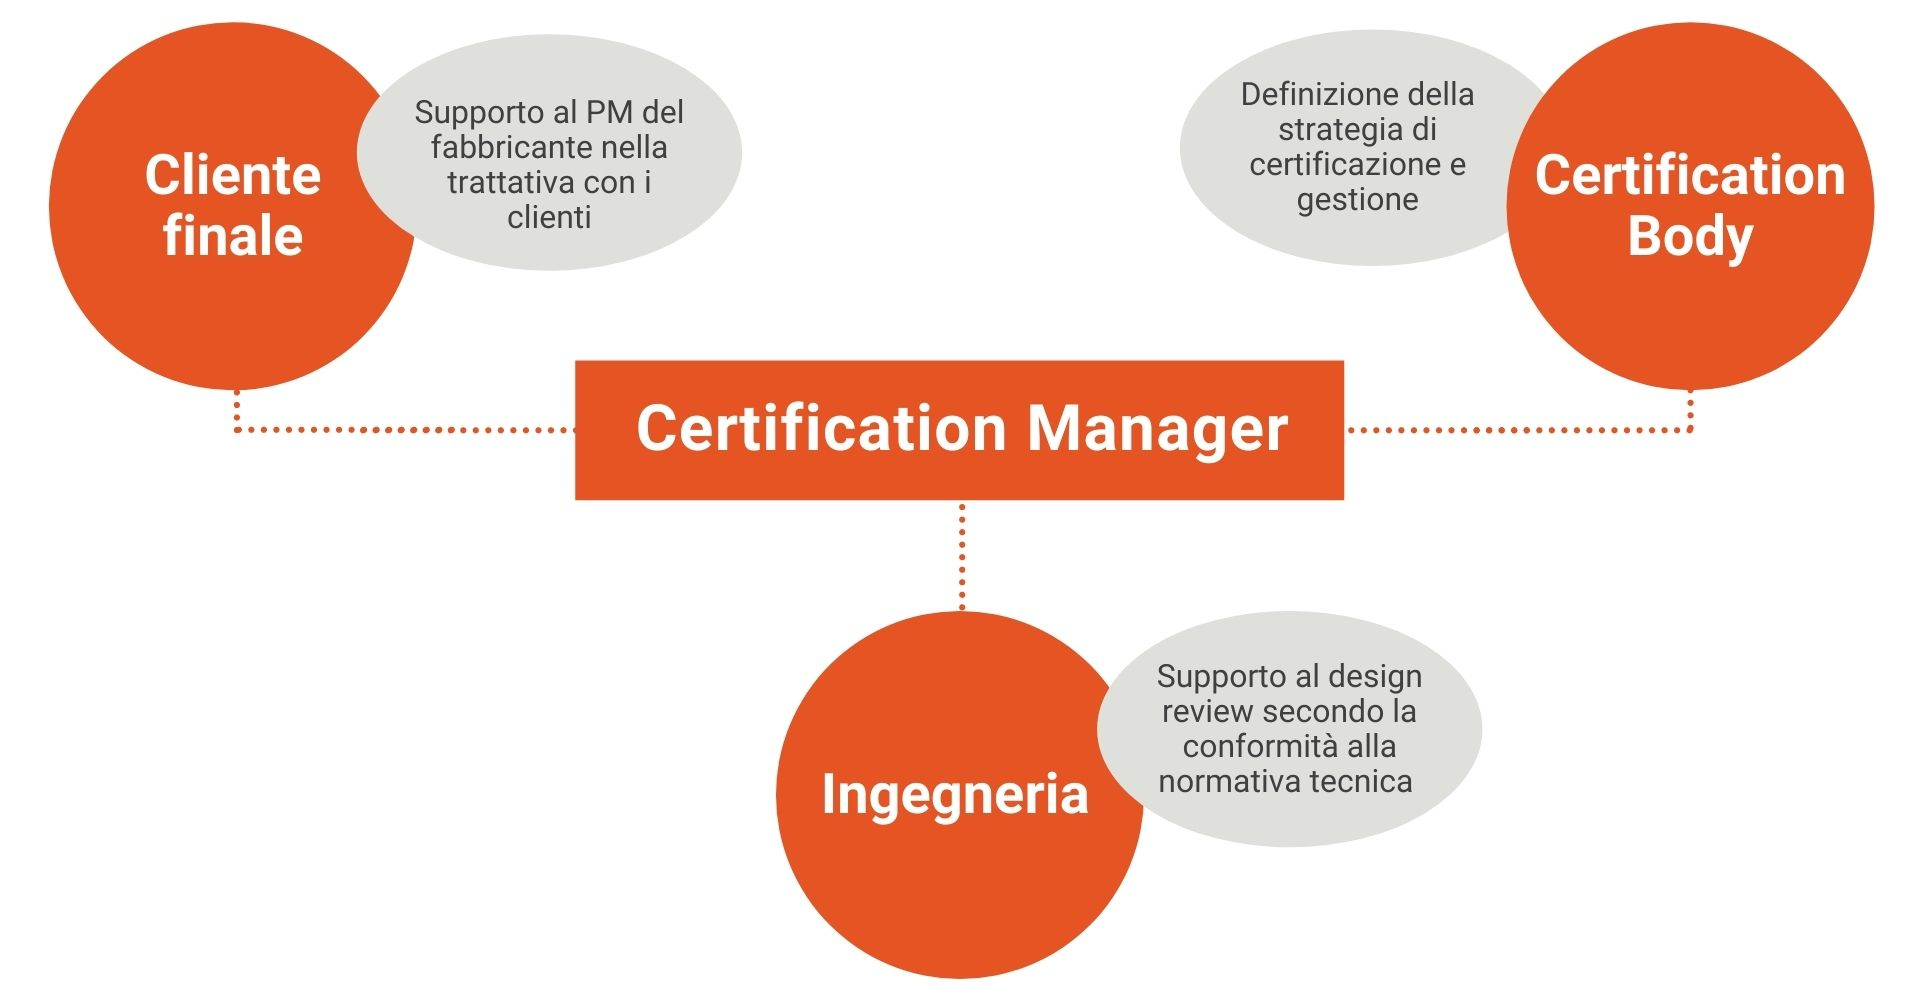 Aree intervento Certification Manager